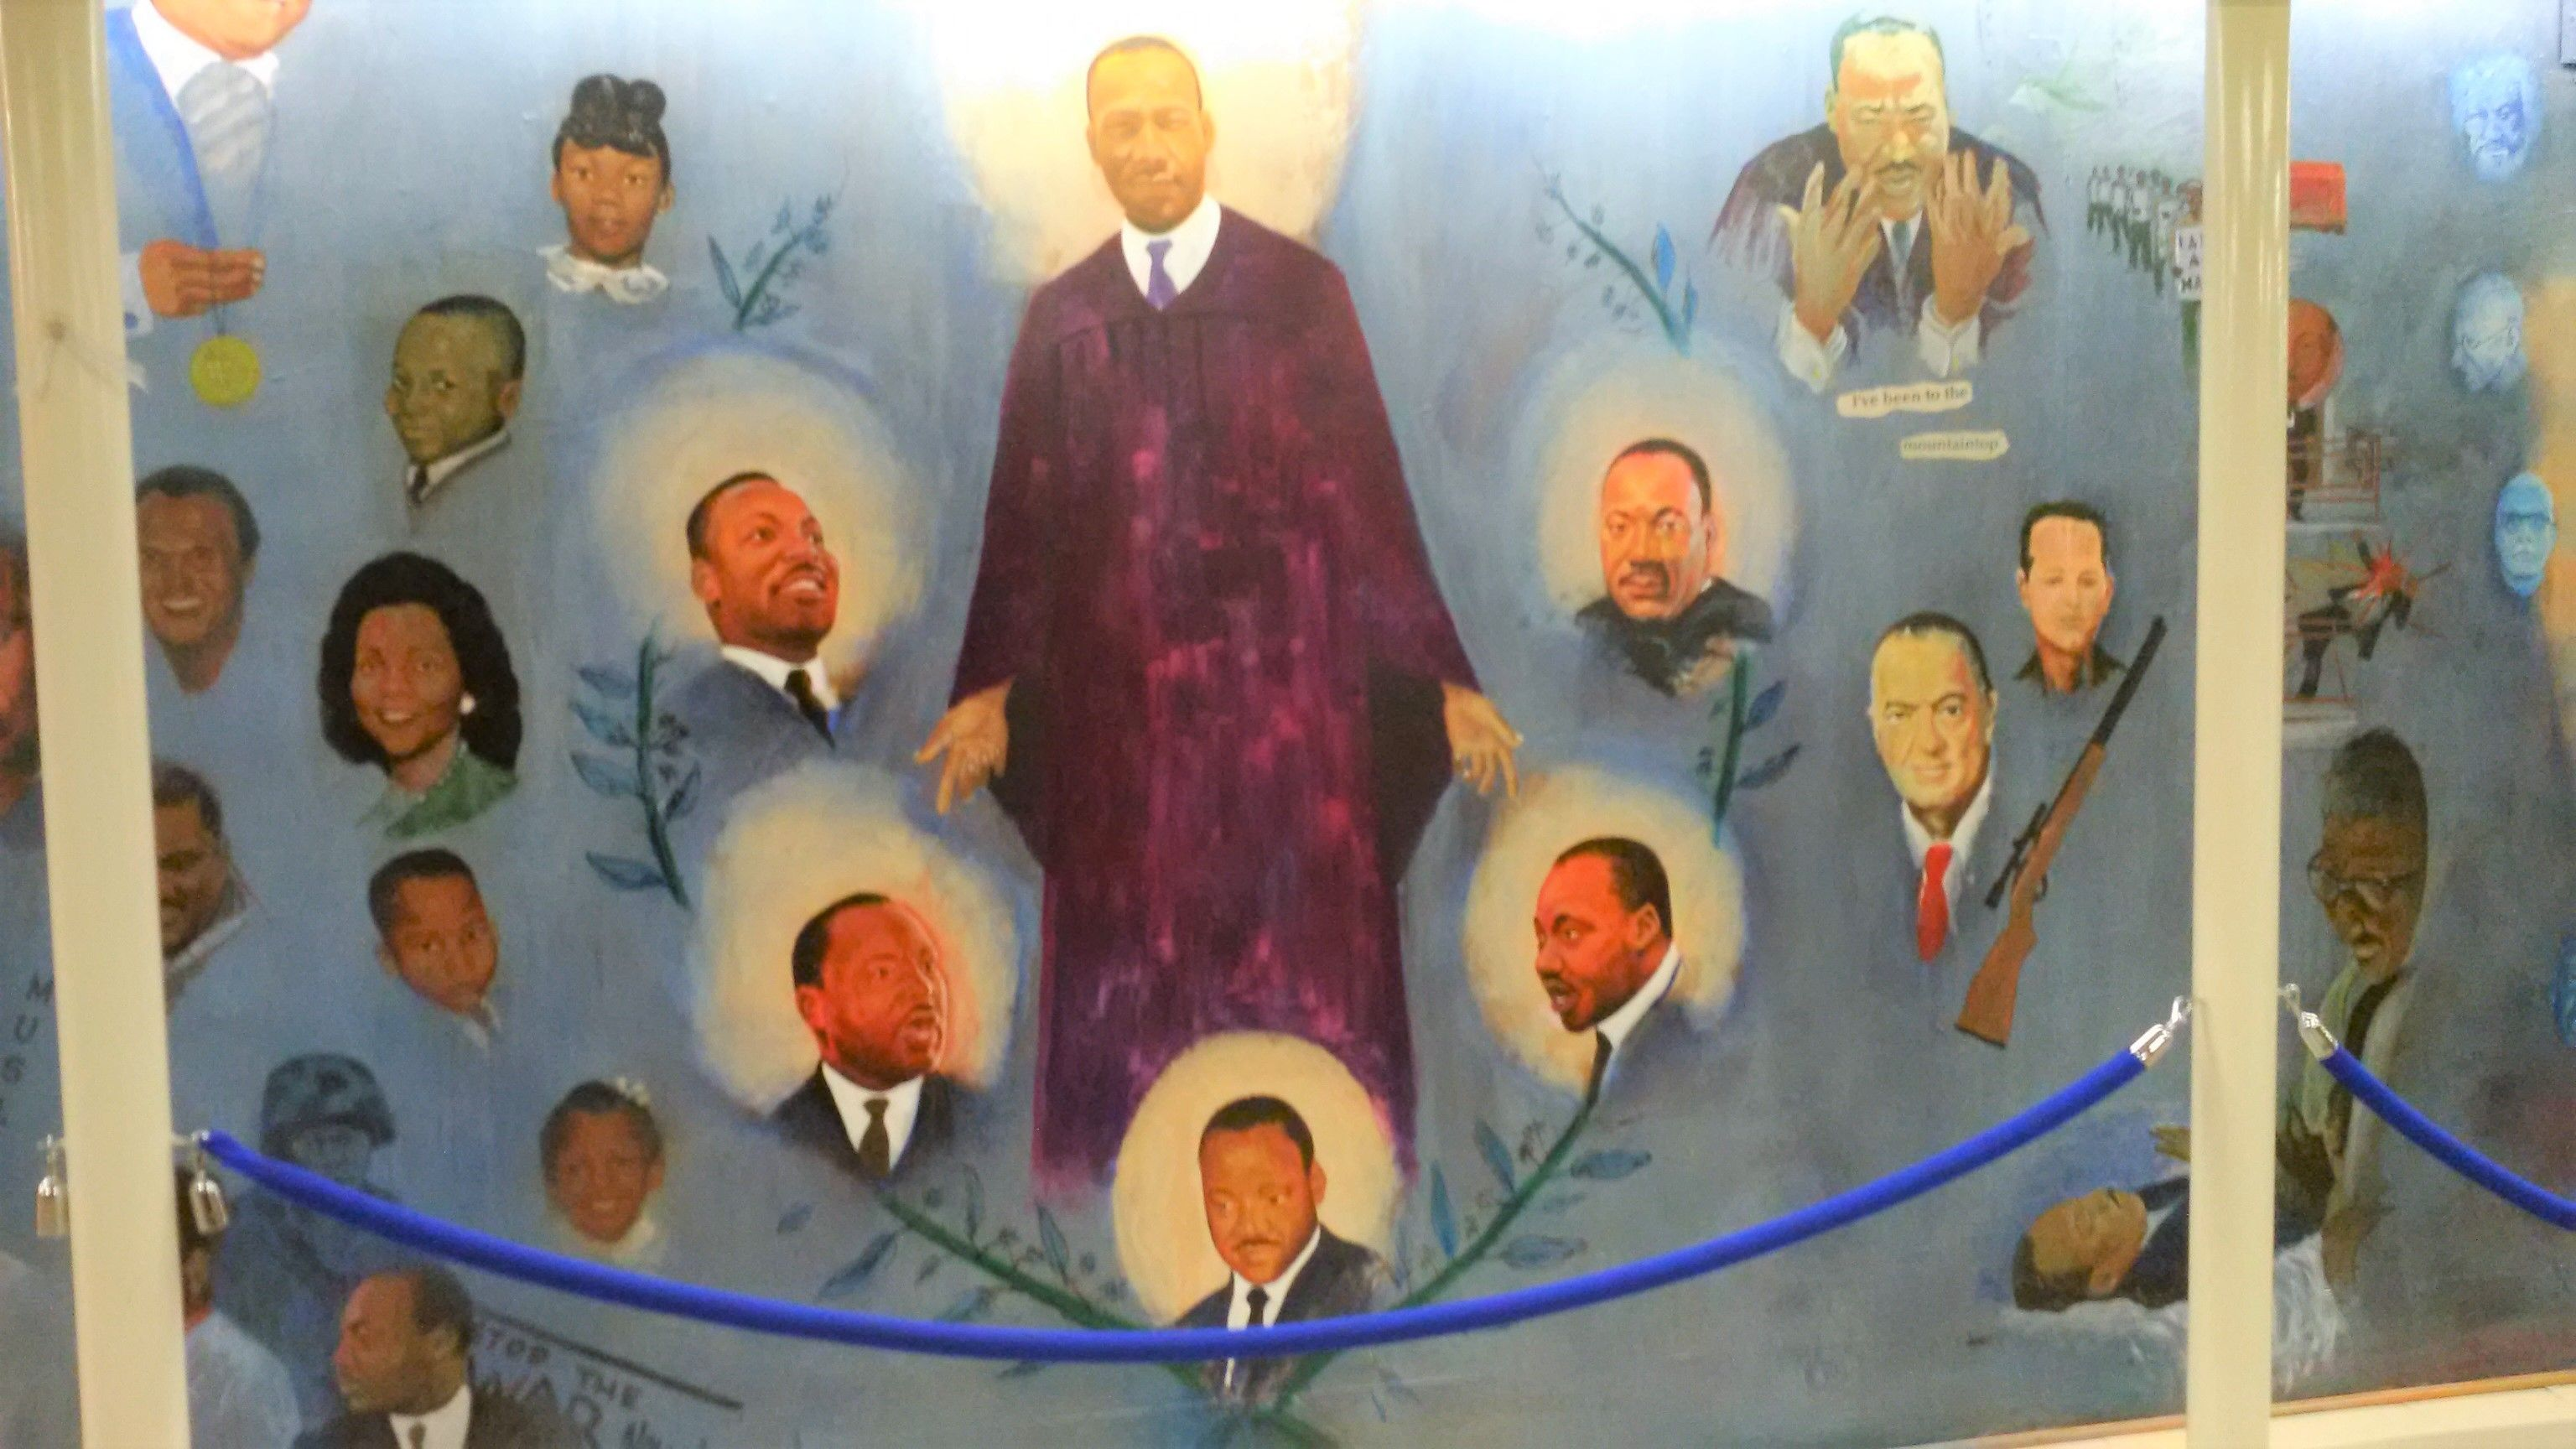 Martin Luther King Jr. celebrated on the Suncoast